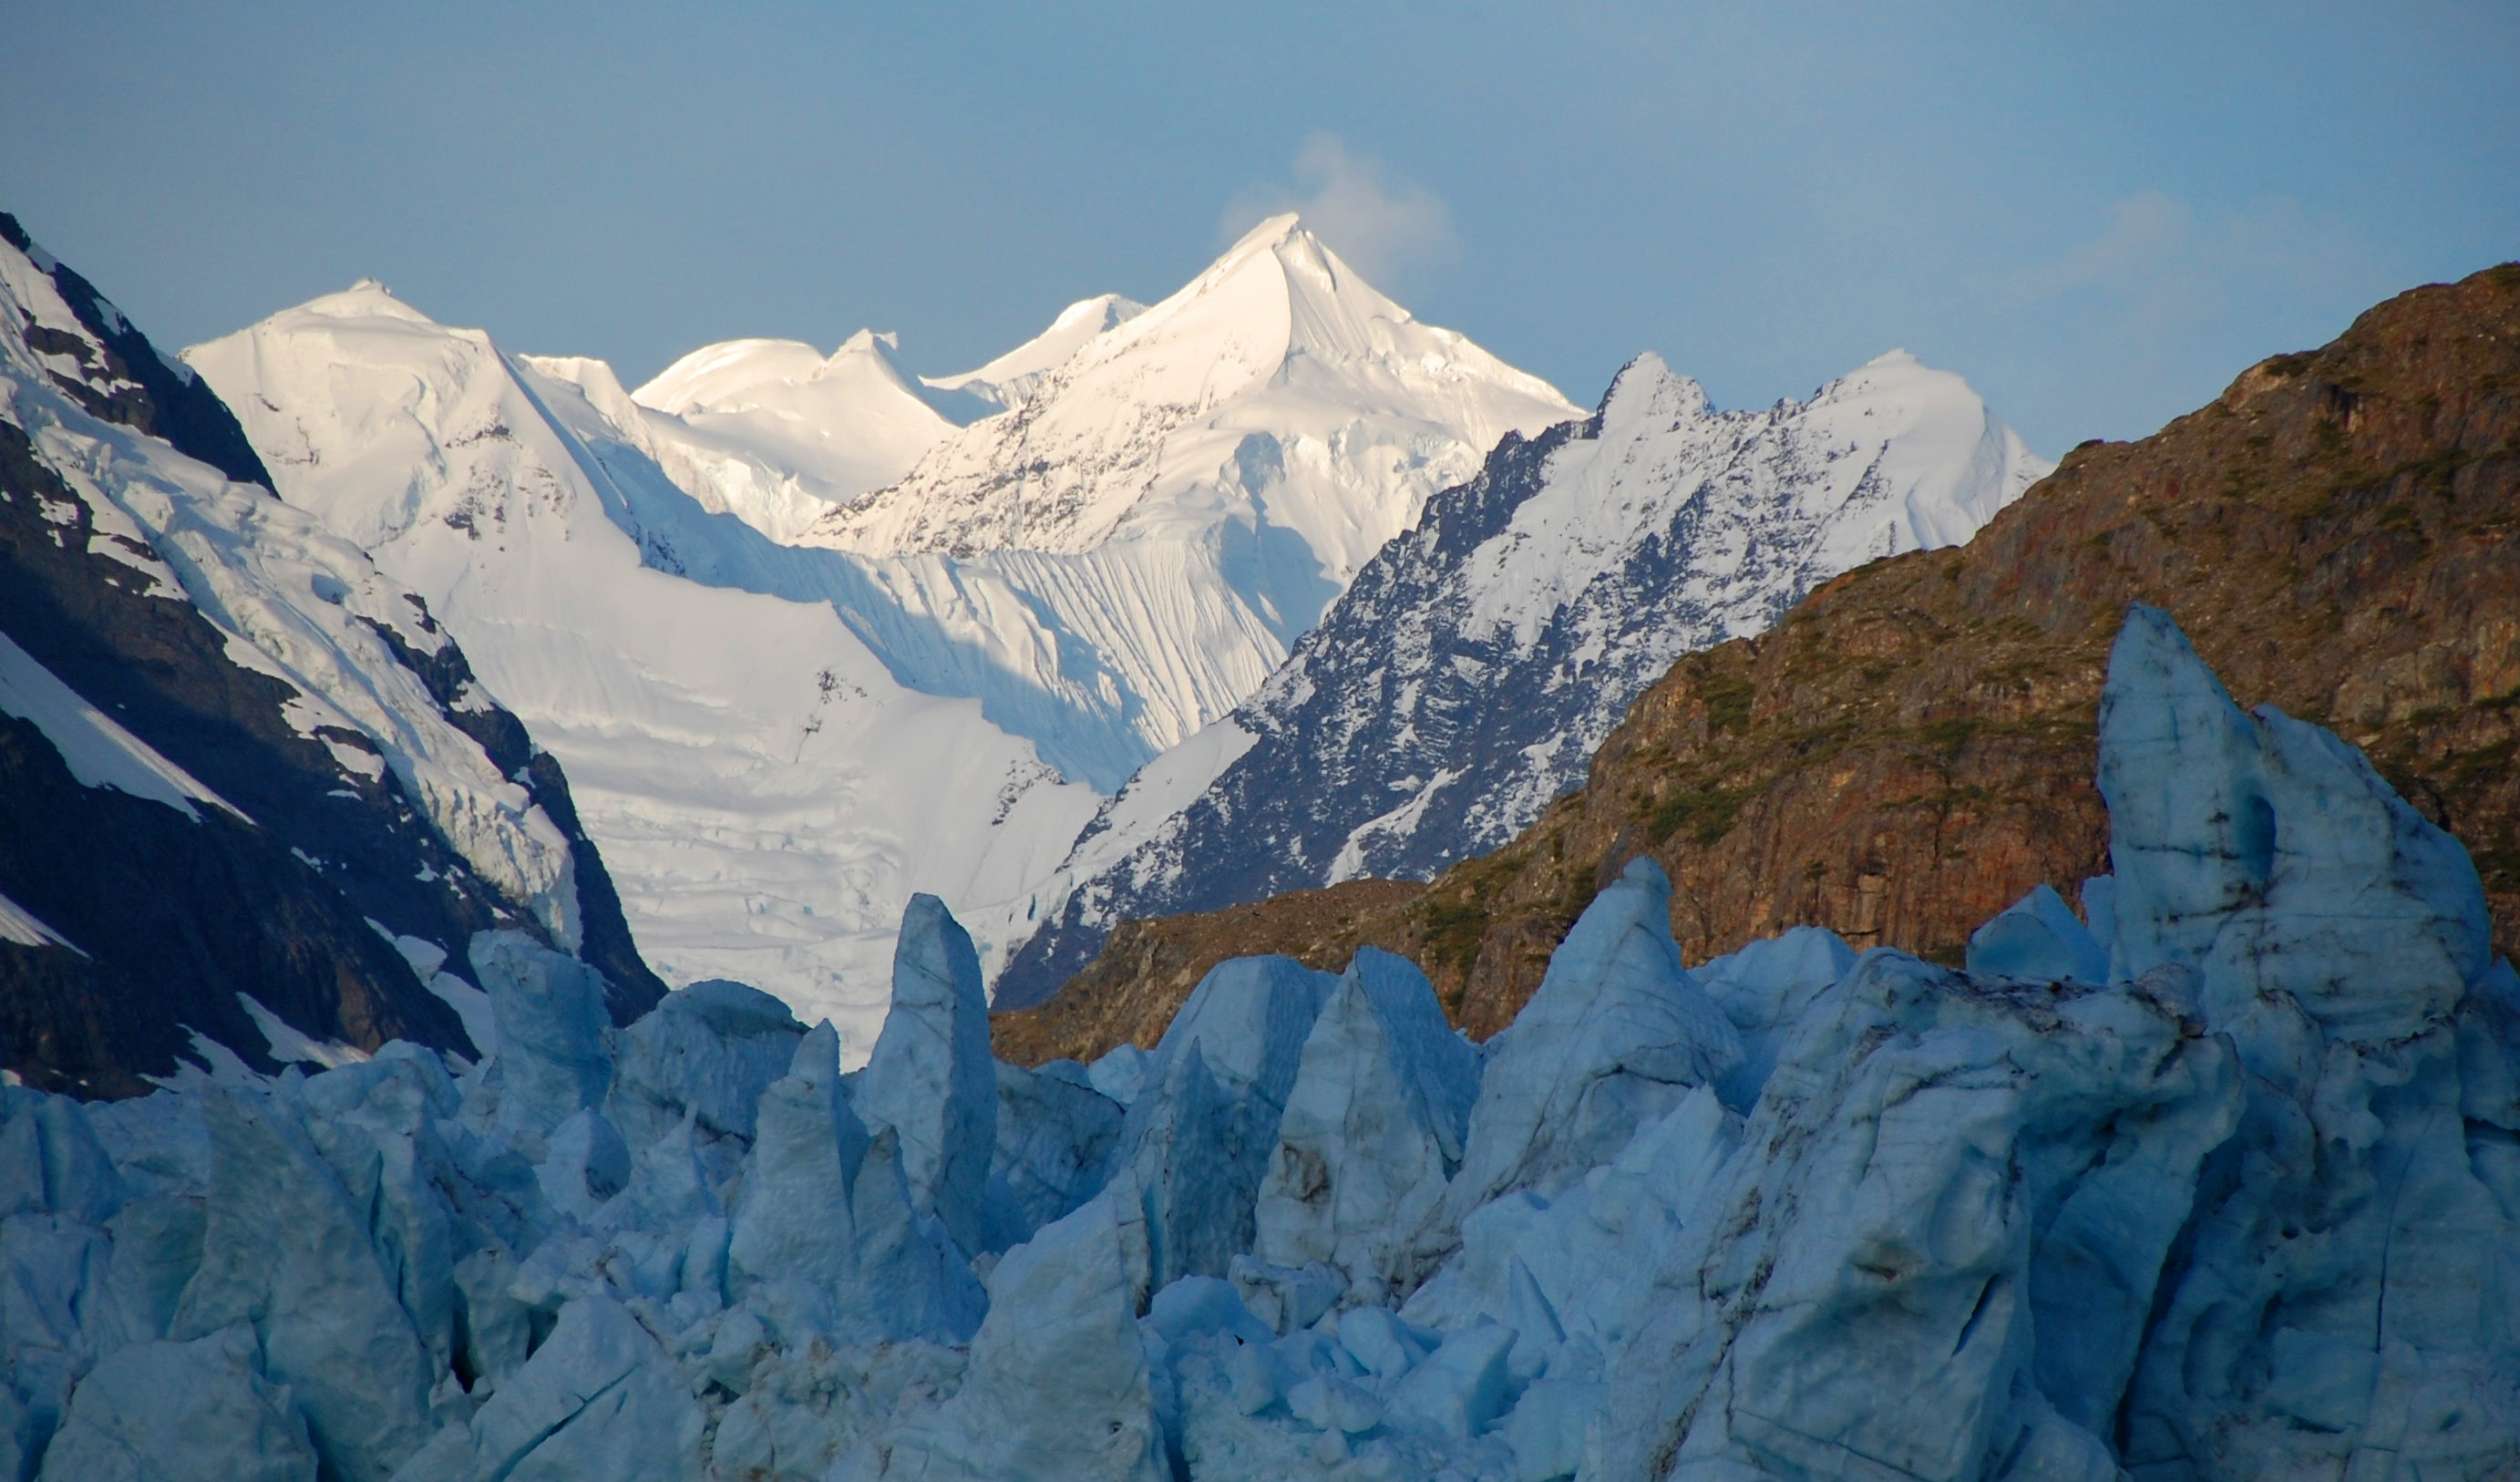 Sunrise on the Fairweather Mountain peaks over the Margerie Glacier - Photo by NPS